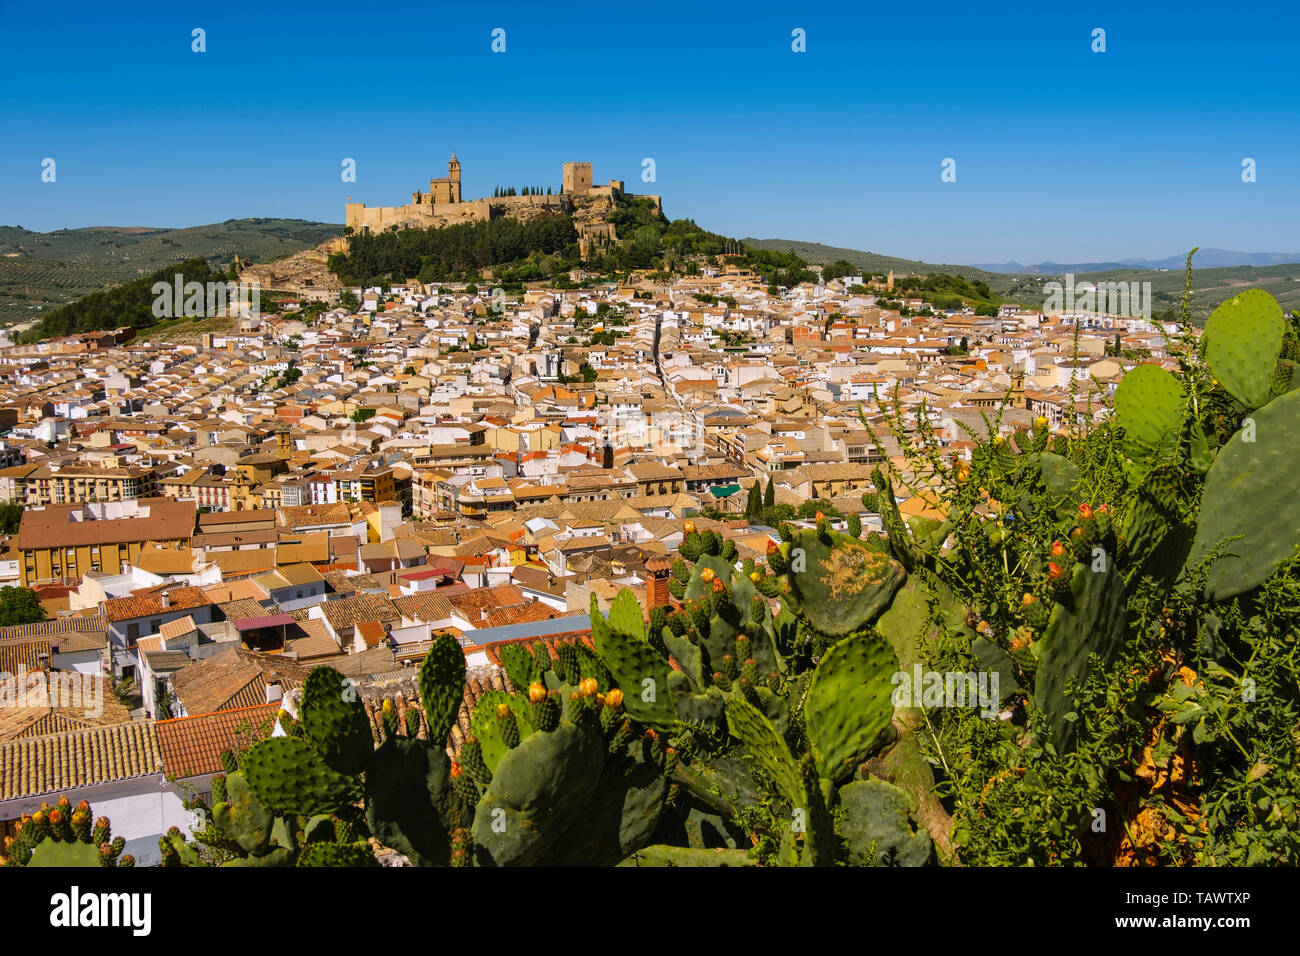 Panoramic view typical Andalusian village of Alcala la Real. Jaen province, southern Andalusia. Spain Europe - Stock Image